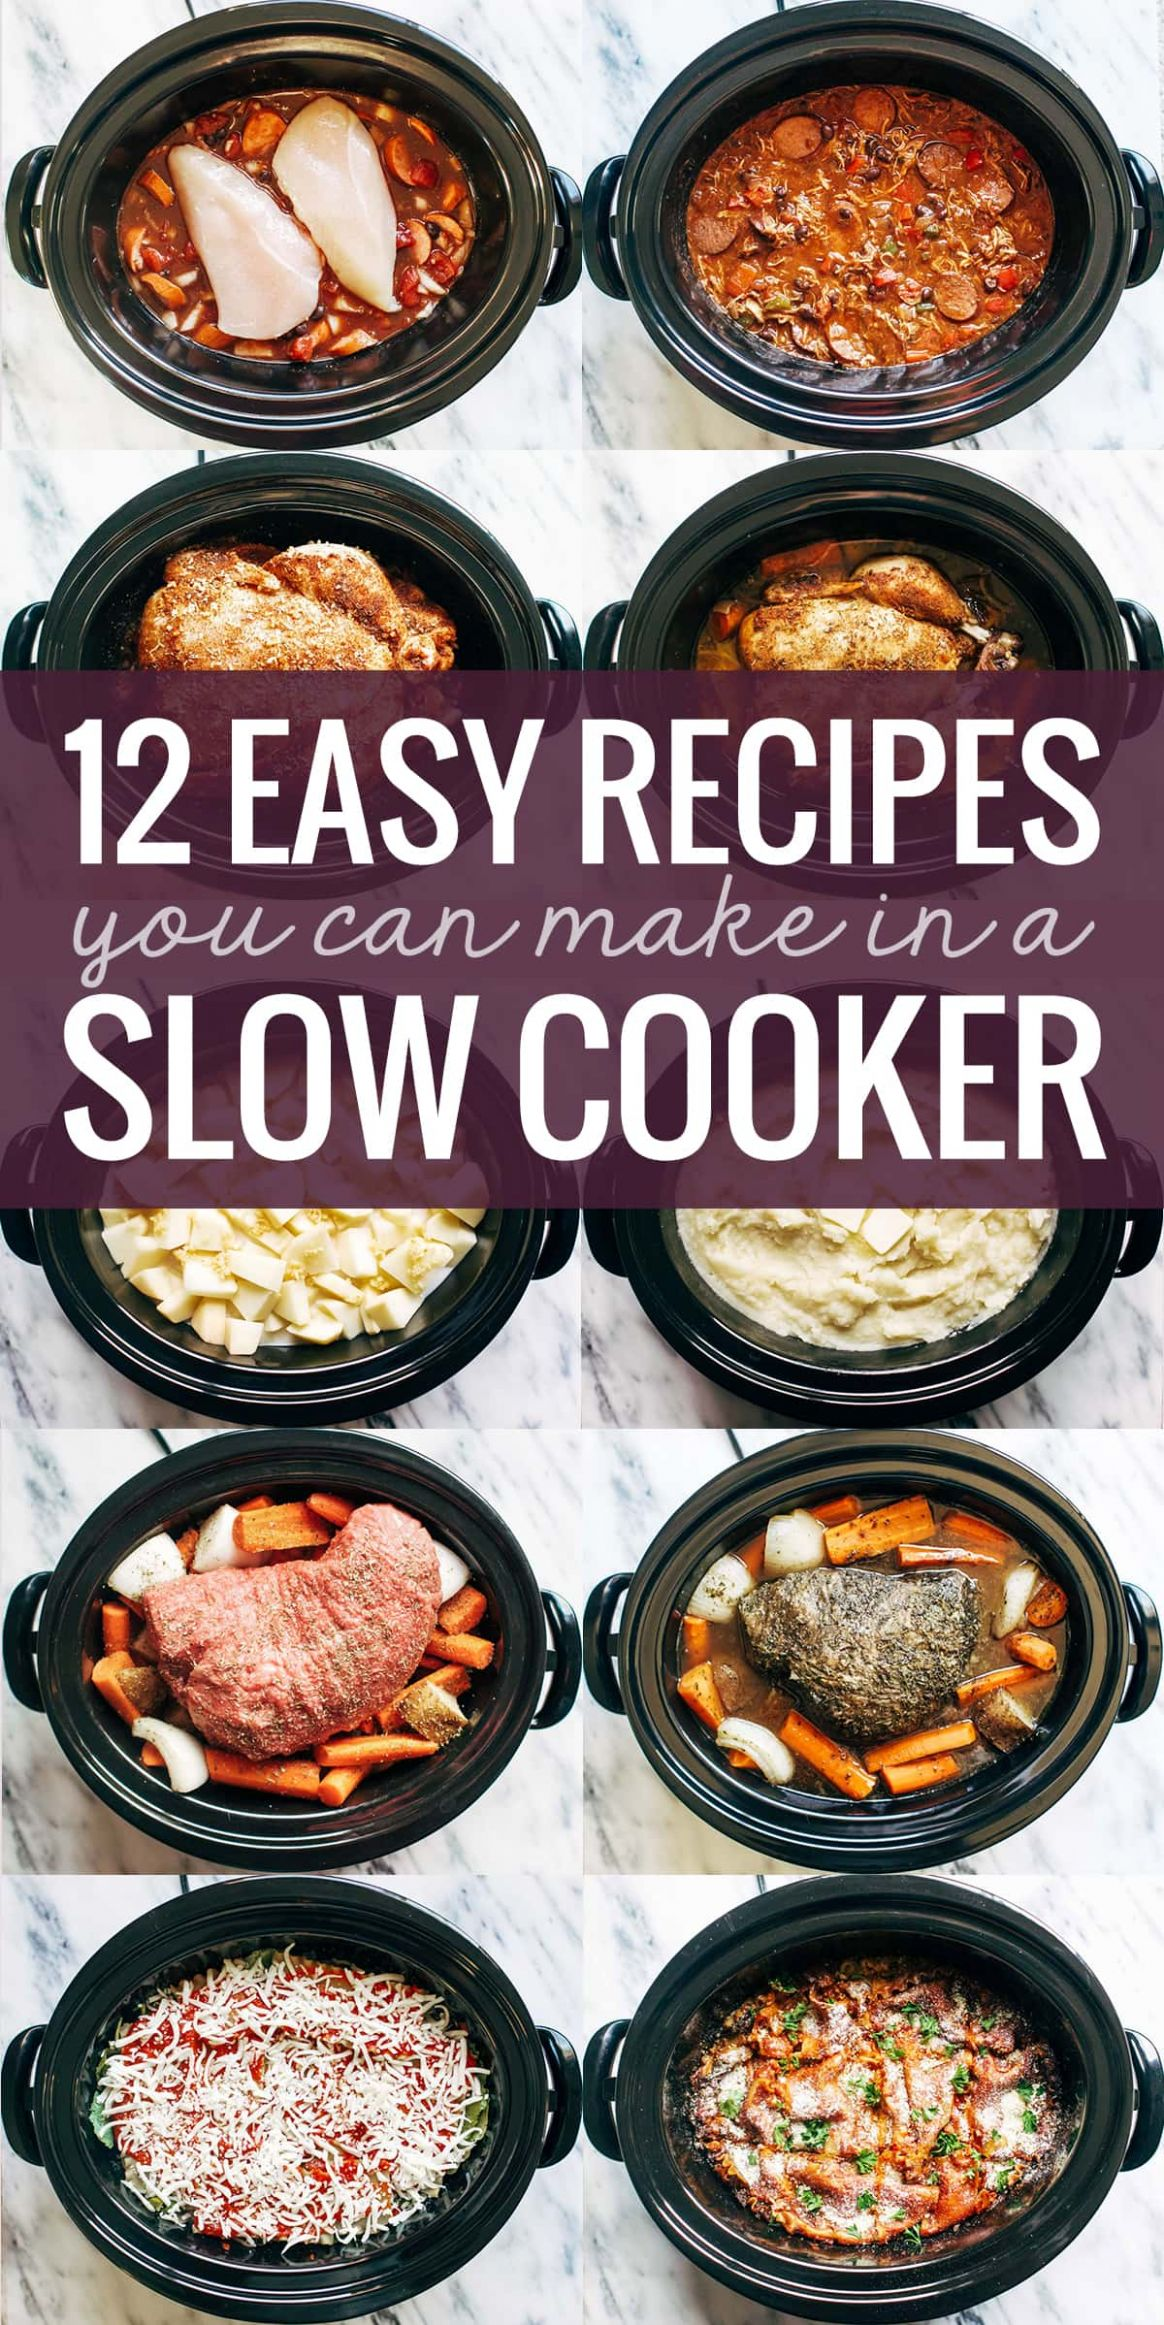 8 Easy Recipes You Can Make in a Slow Cooker - Pinch of Yum